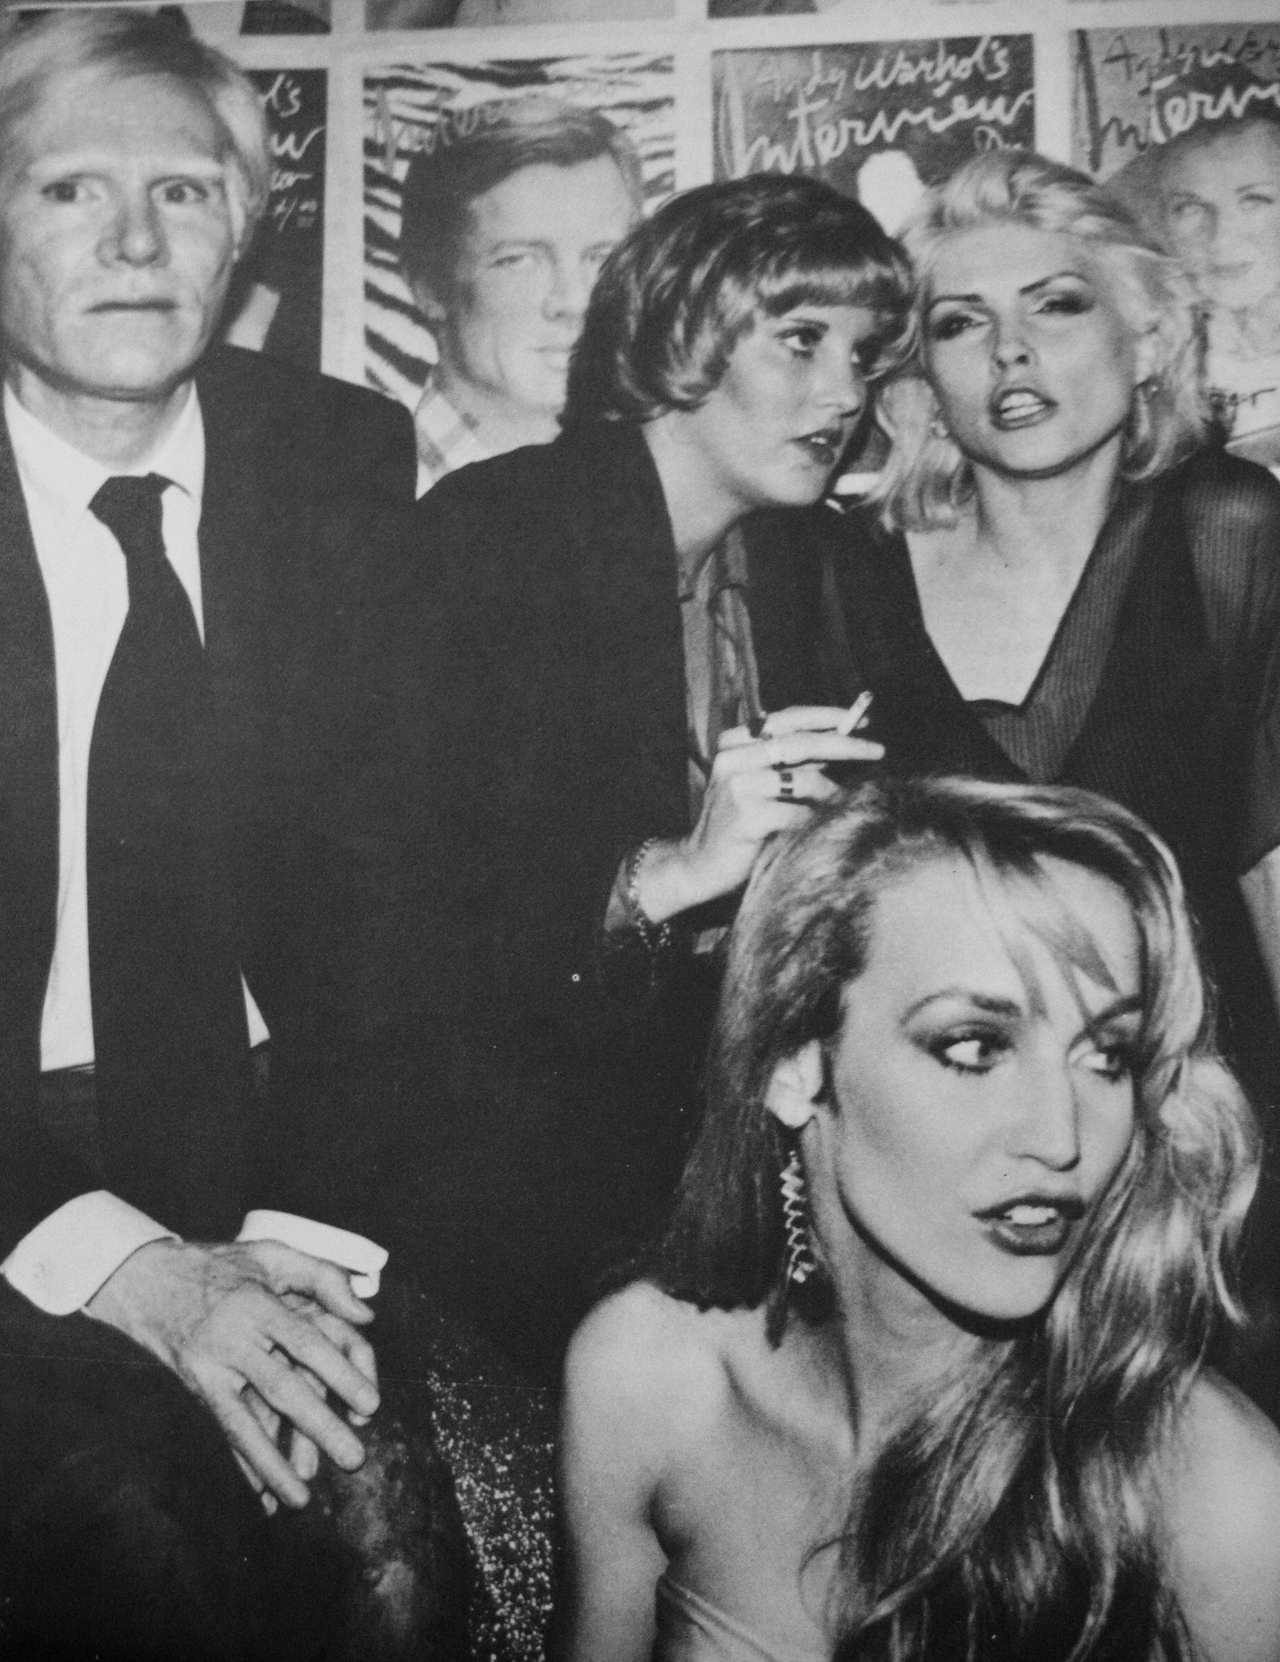 Andy Warhol, Debbie Harry and Jerry Hall at Studio 54